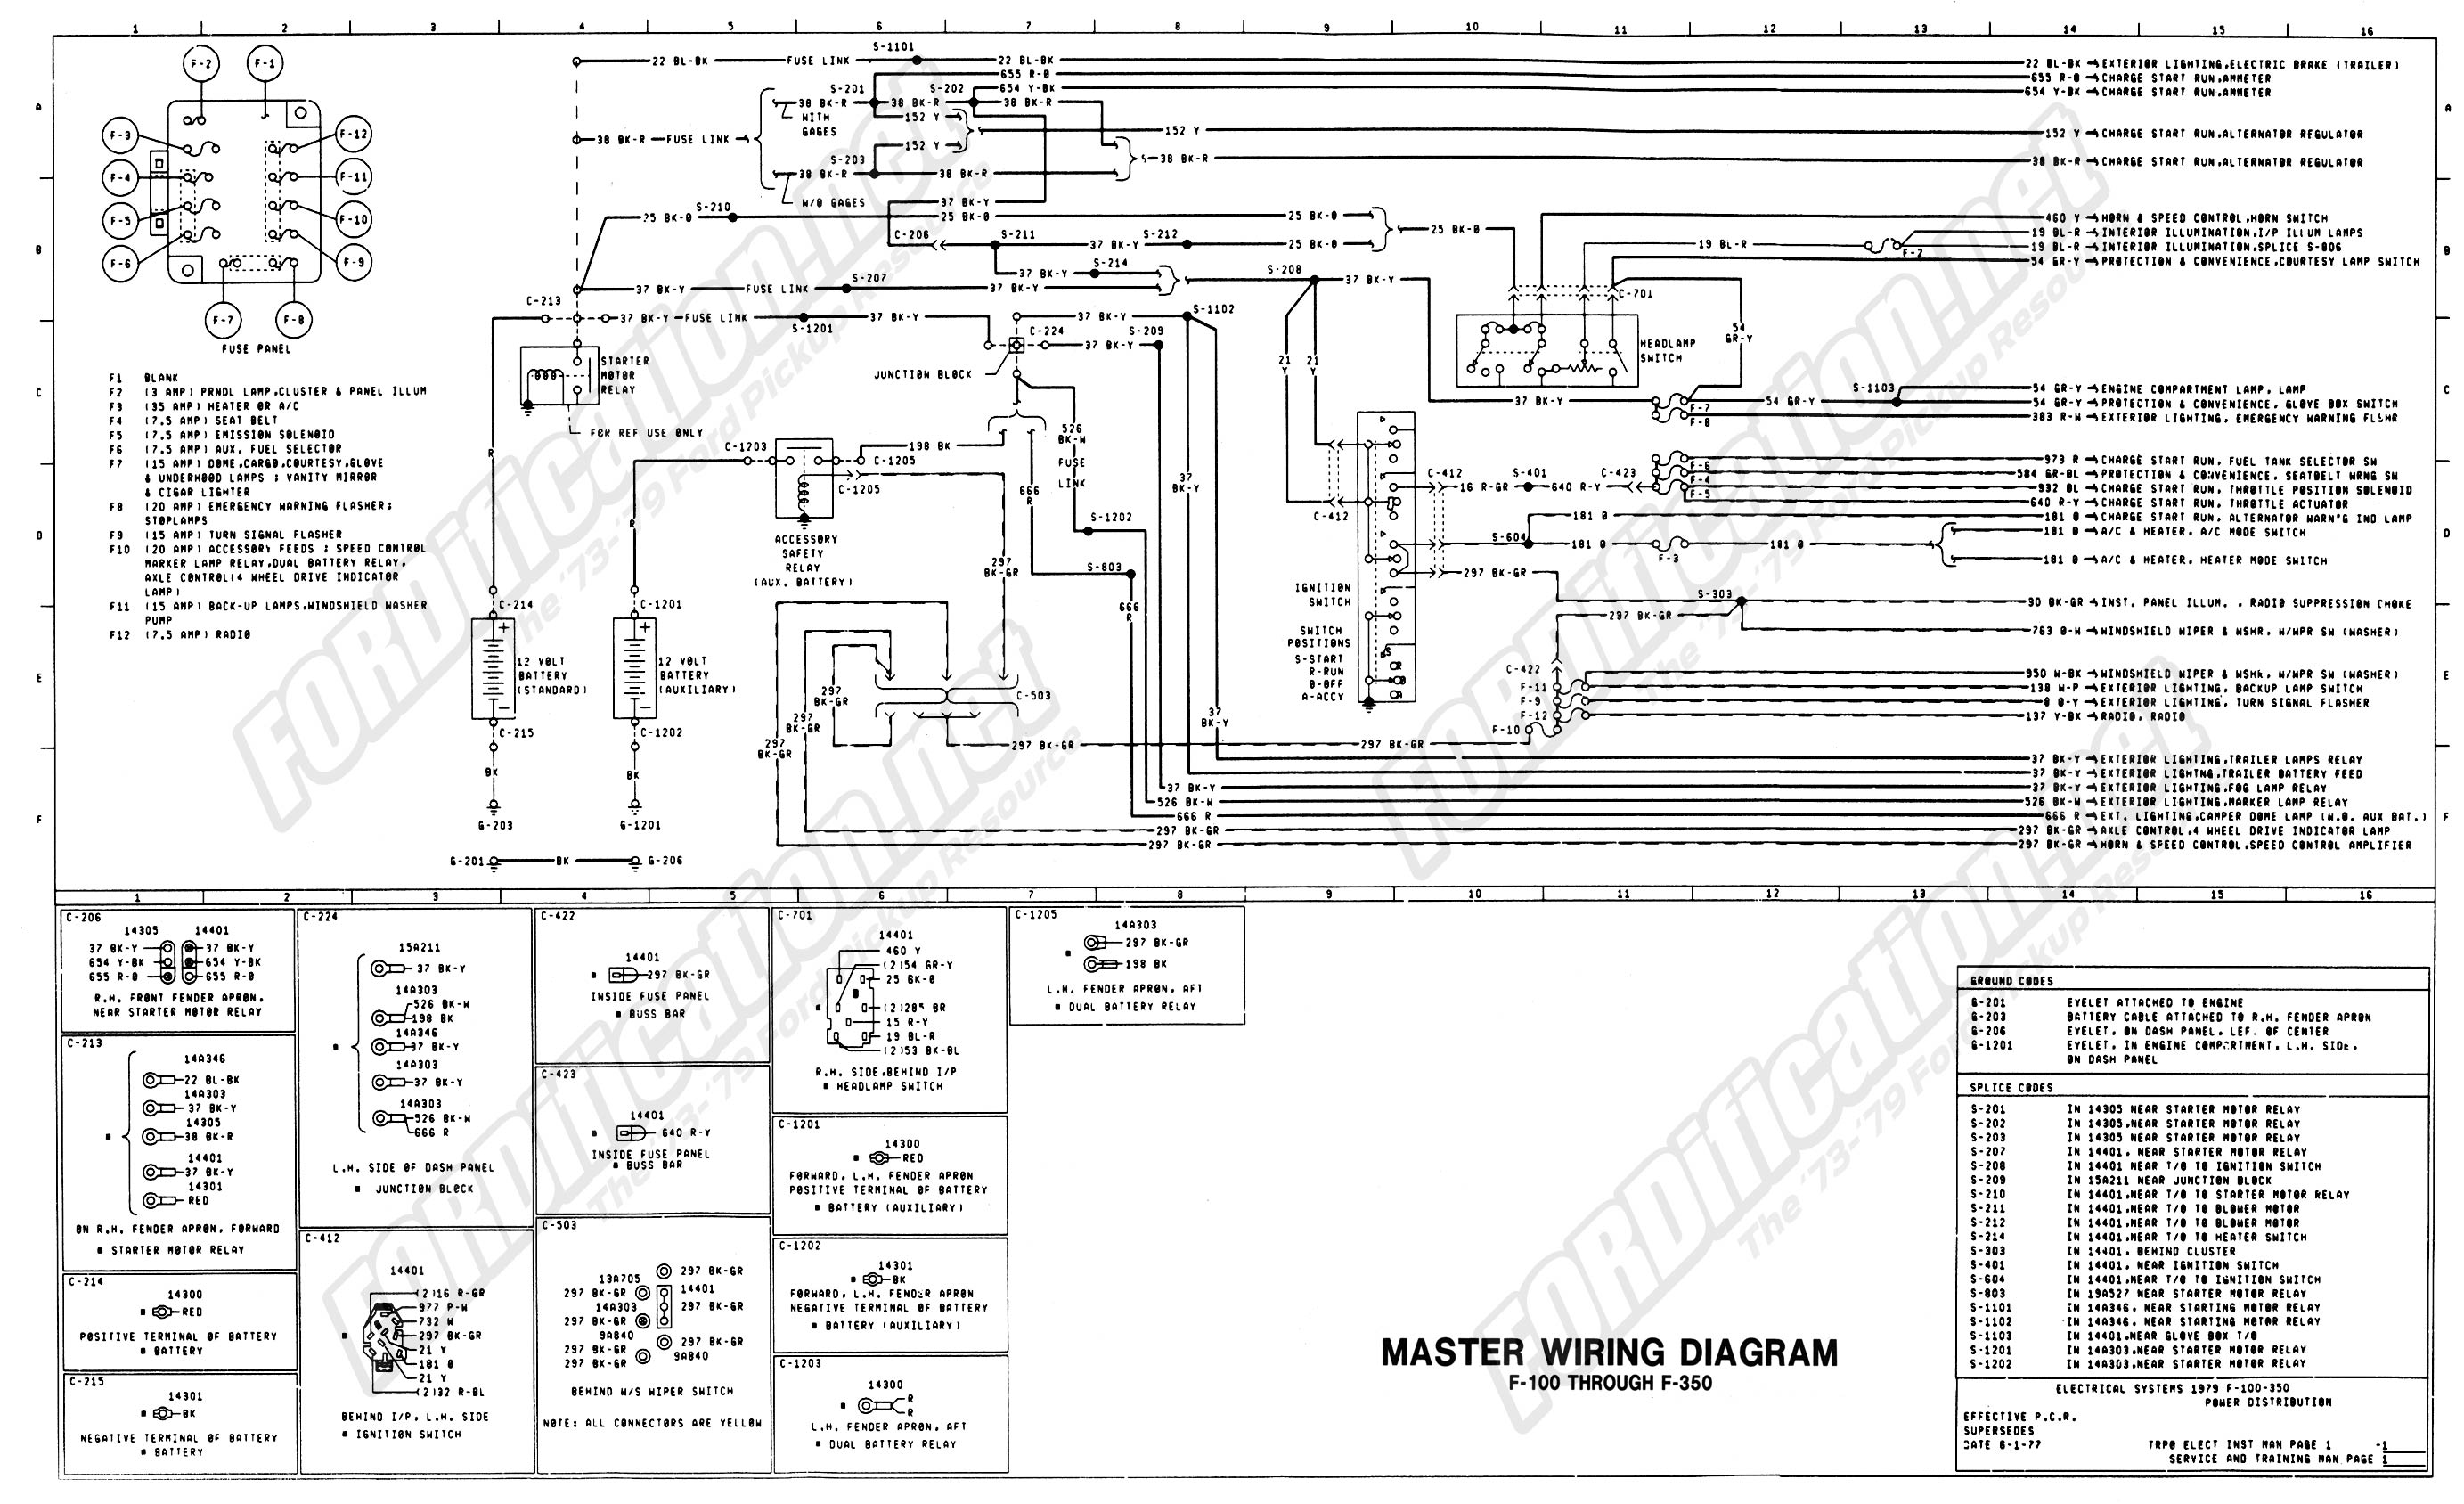 wiring_79master_1of9 1973 1979 ford truck wiring diagrams & schematics fordification net c tec 800 series wiring diagram at nearapp.co